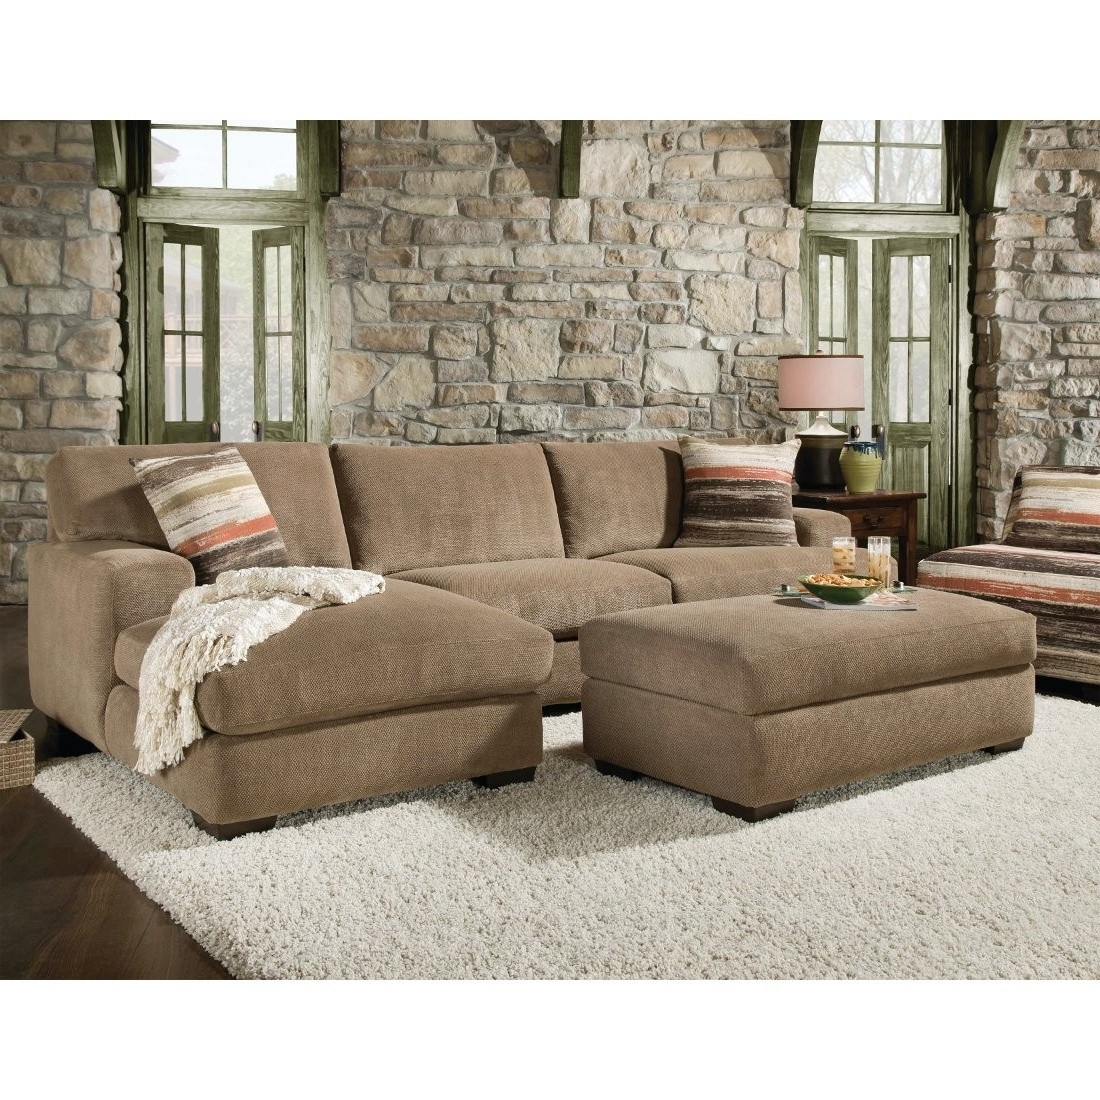 Well Liked Small Couches With Chaise Lounge With Regard To Small Sofa Chaise Lounge – Tanningworldexpo (View 14 of 15)